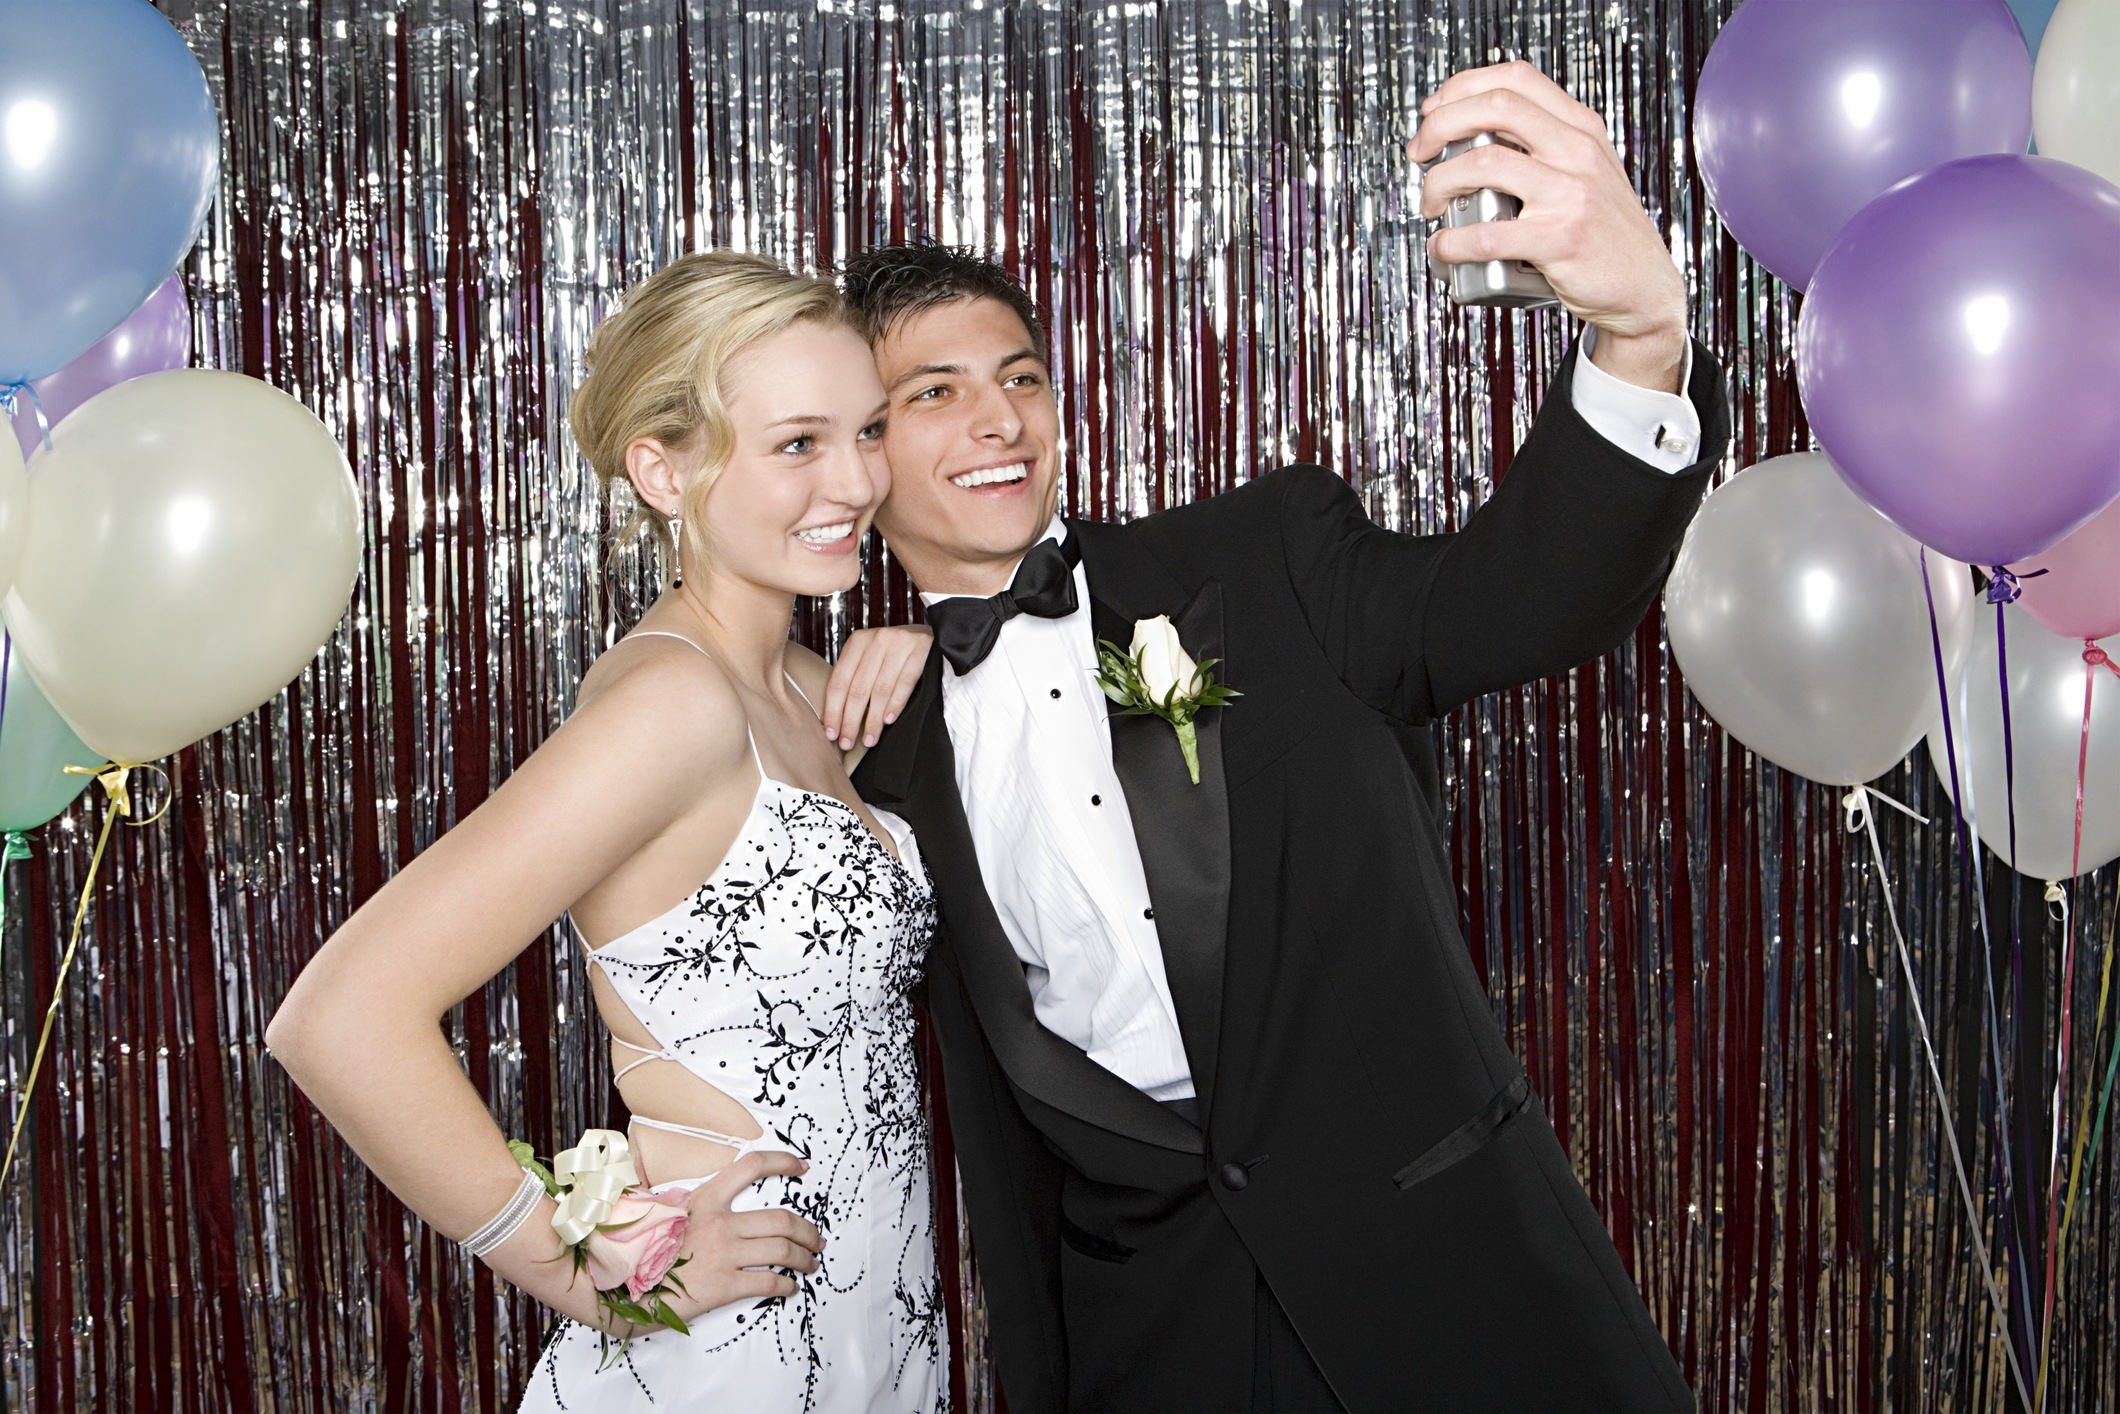 Boy and Girl at prom